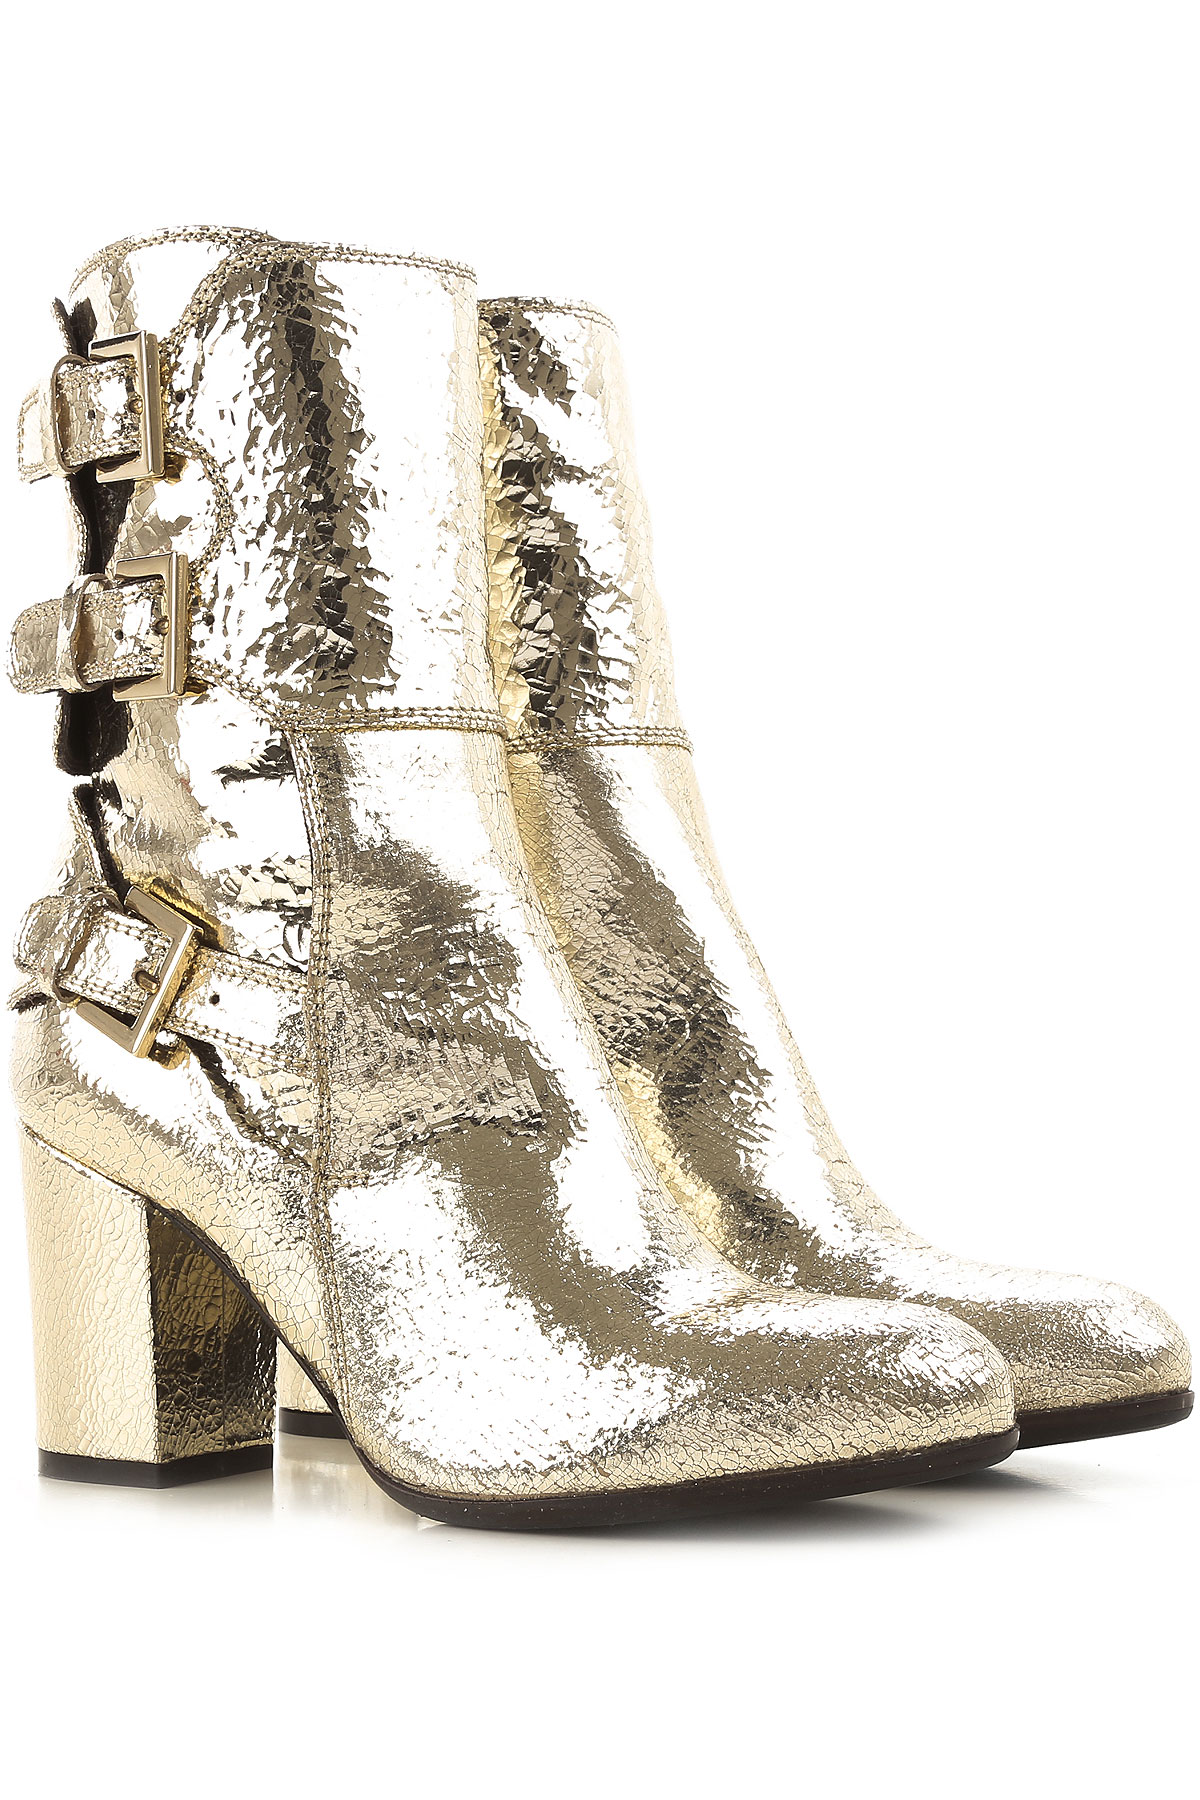 Paris Texas Boots for Women, Booties On Sale in Outlet, Platinum, lame, 2019, 5.5 6.5